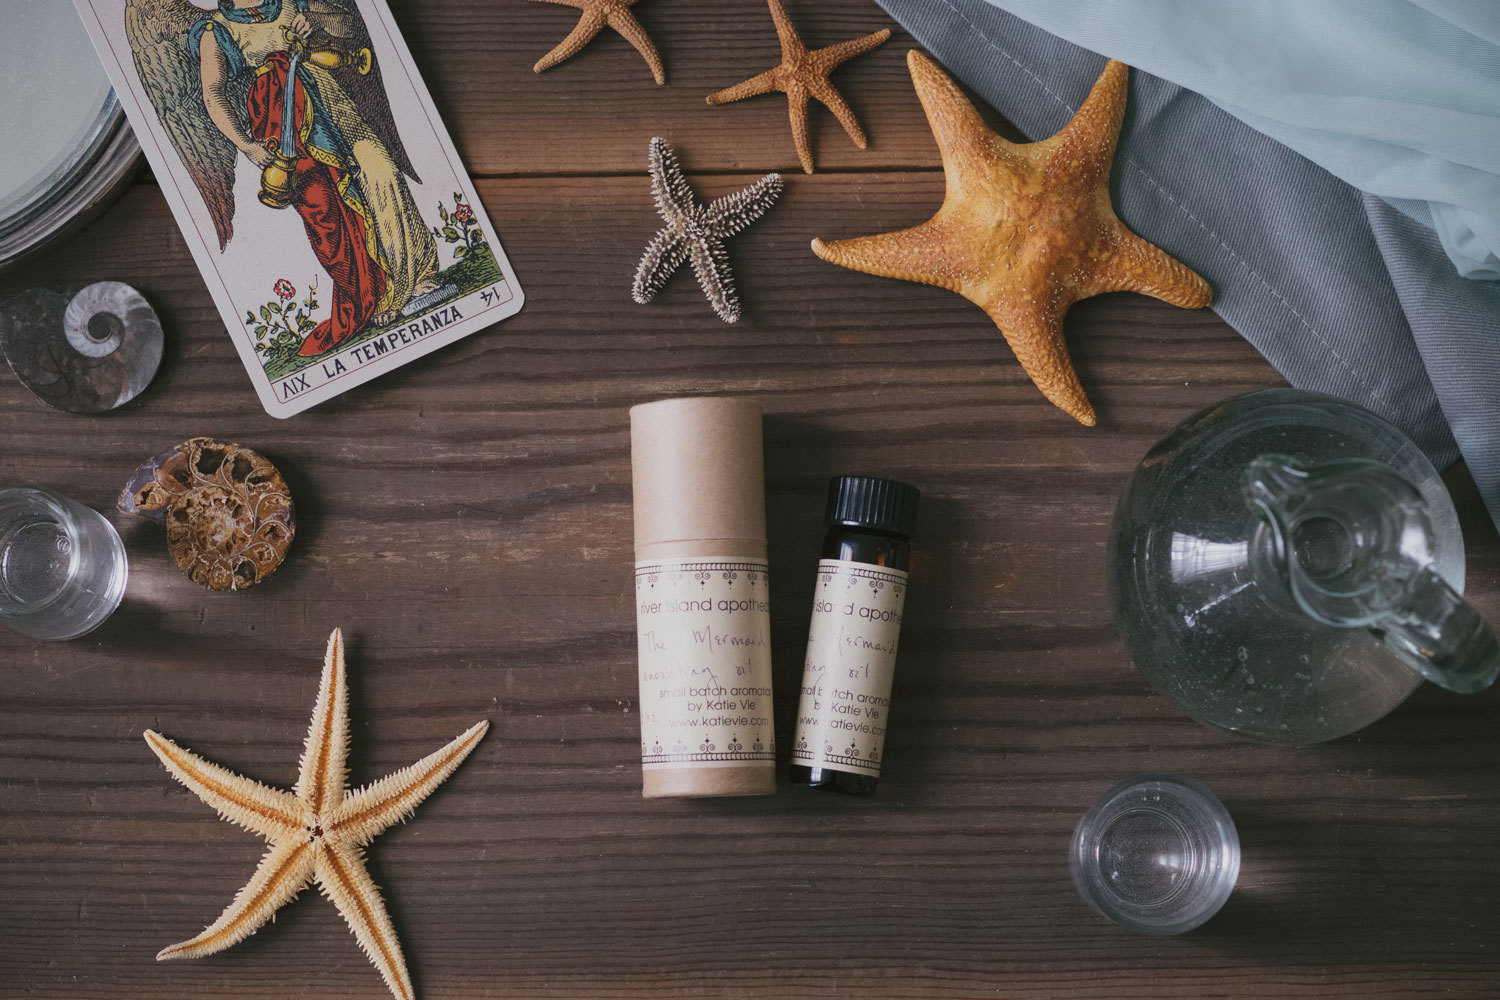 The Mermaid Anointing Oil